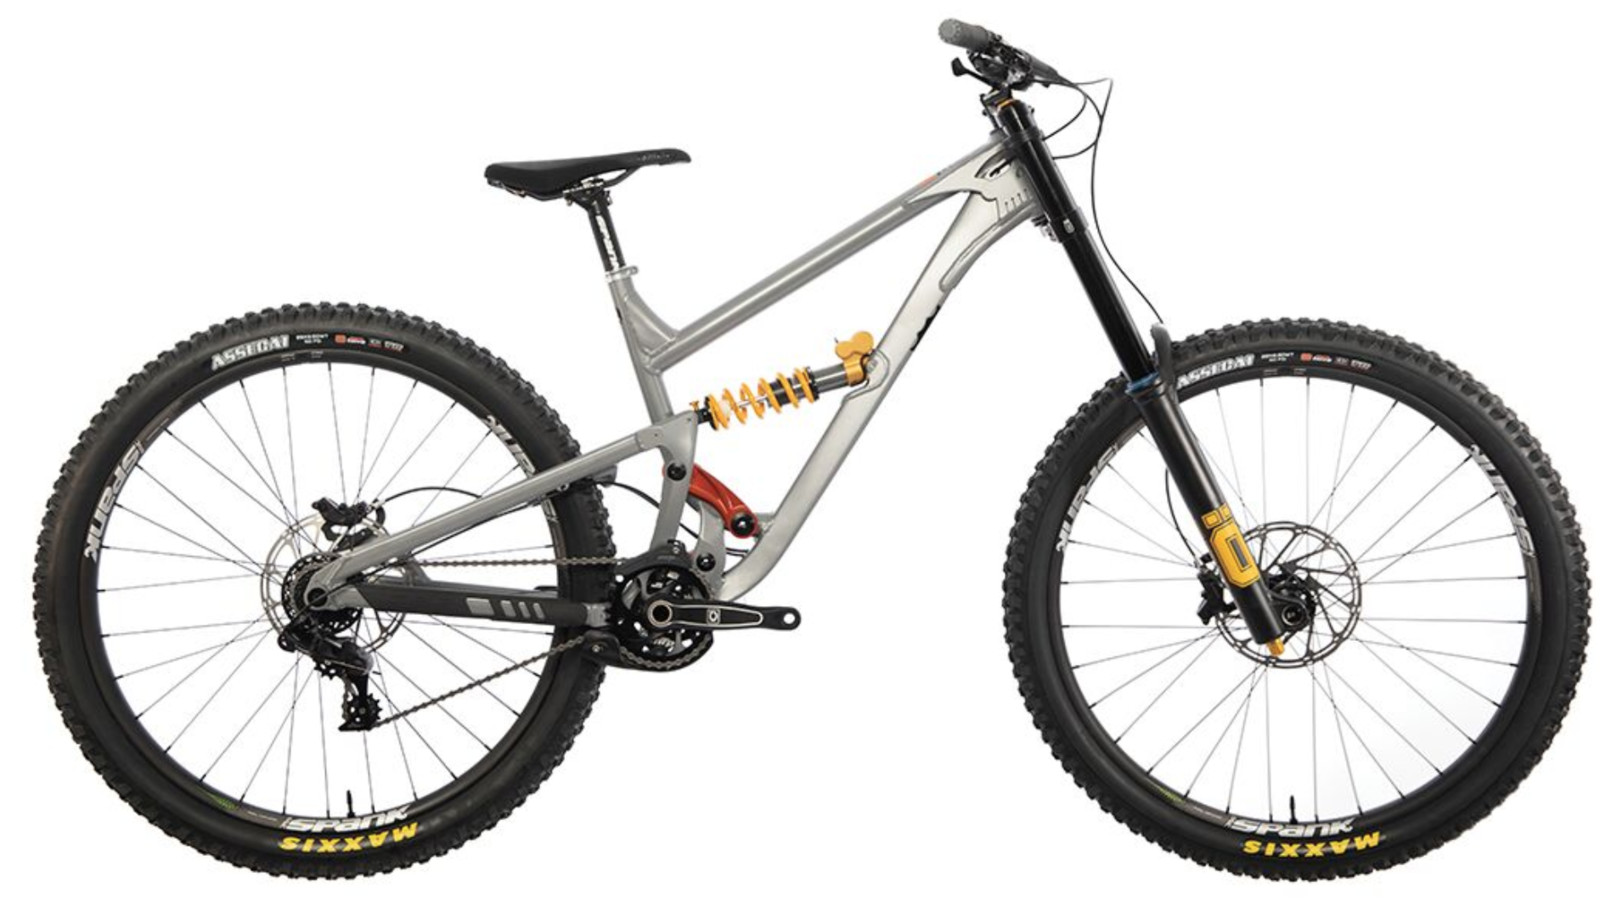 Here it is, Canfield Bikes' All-New ONE.2 Downhill Bike